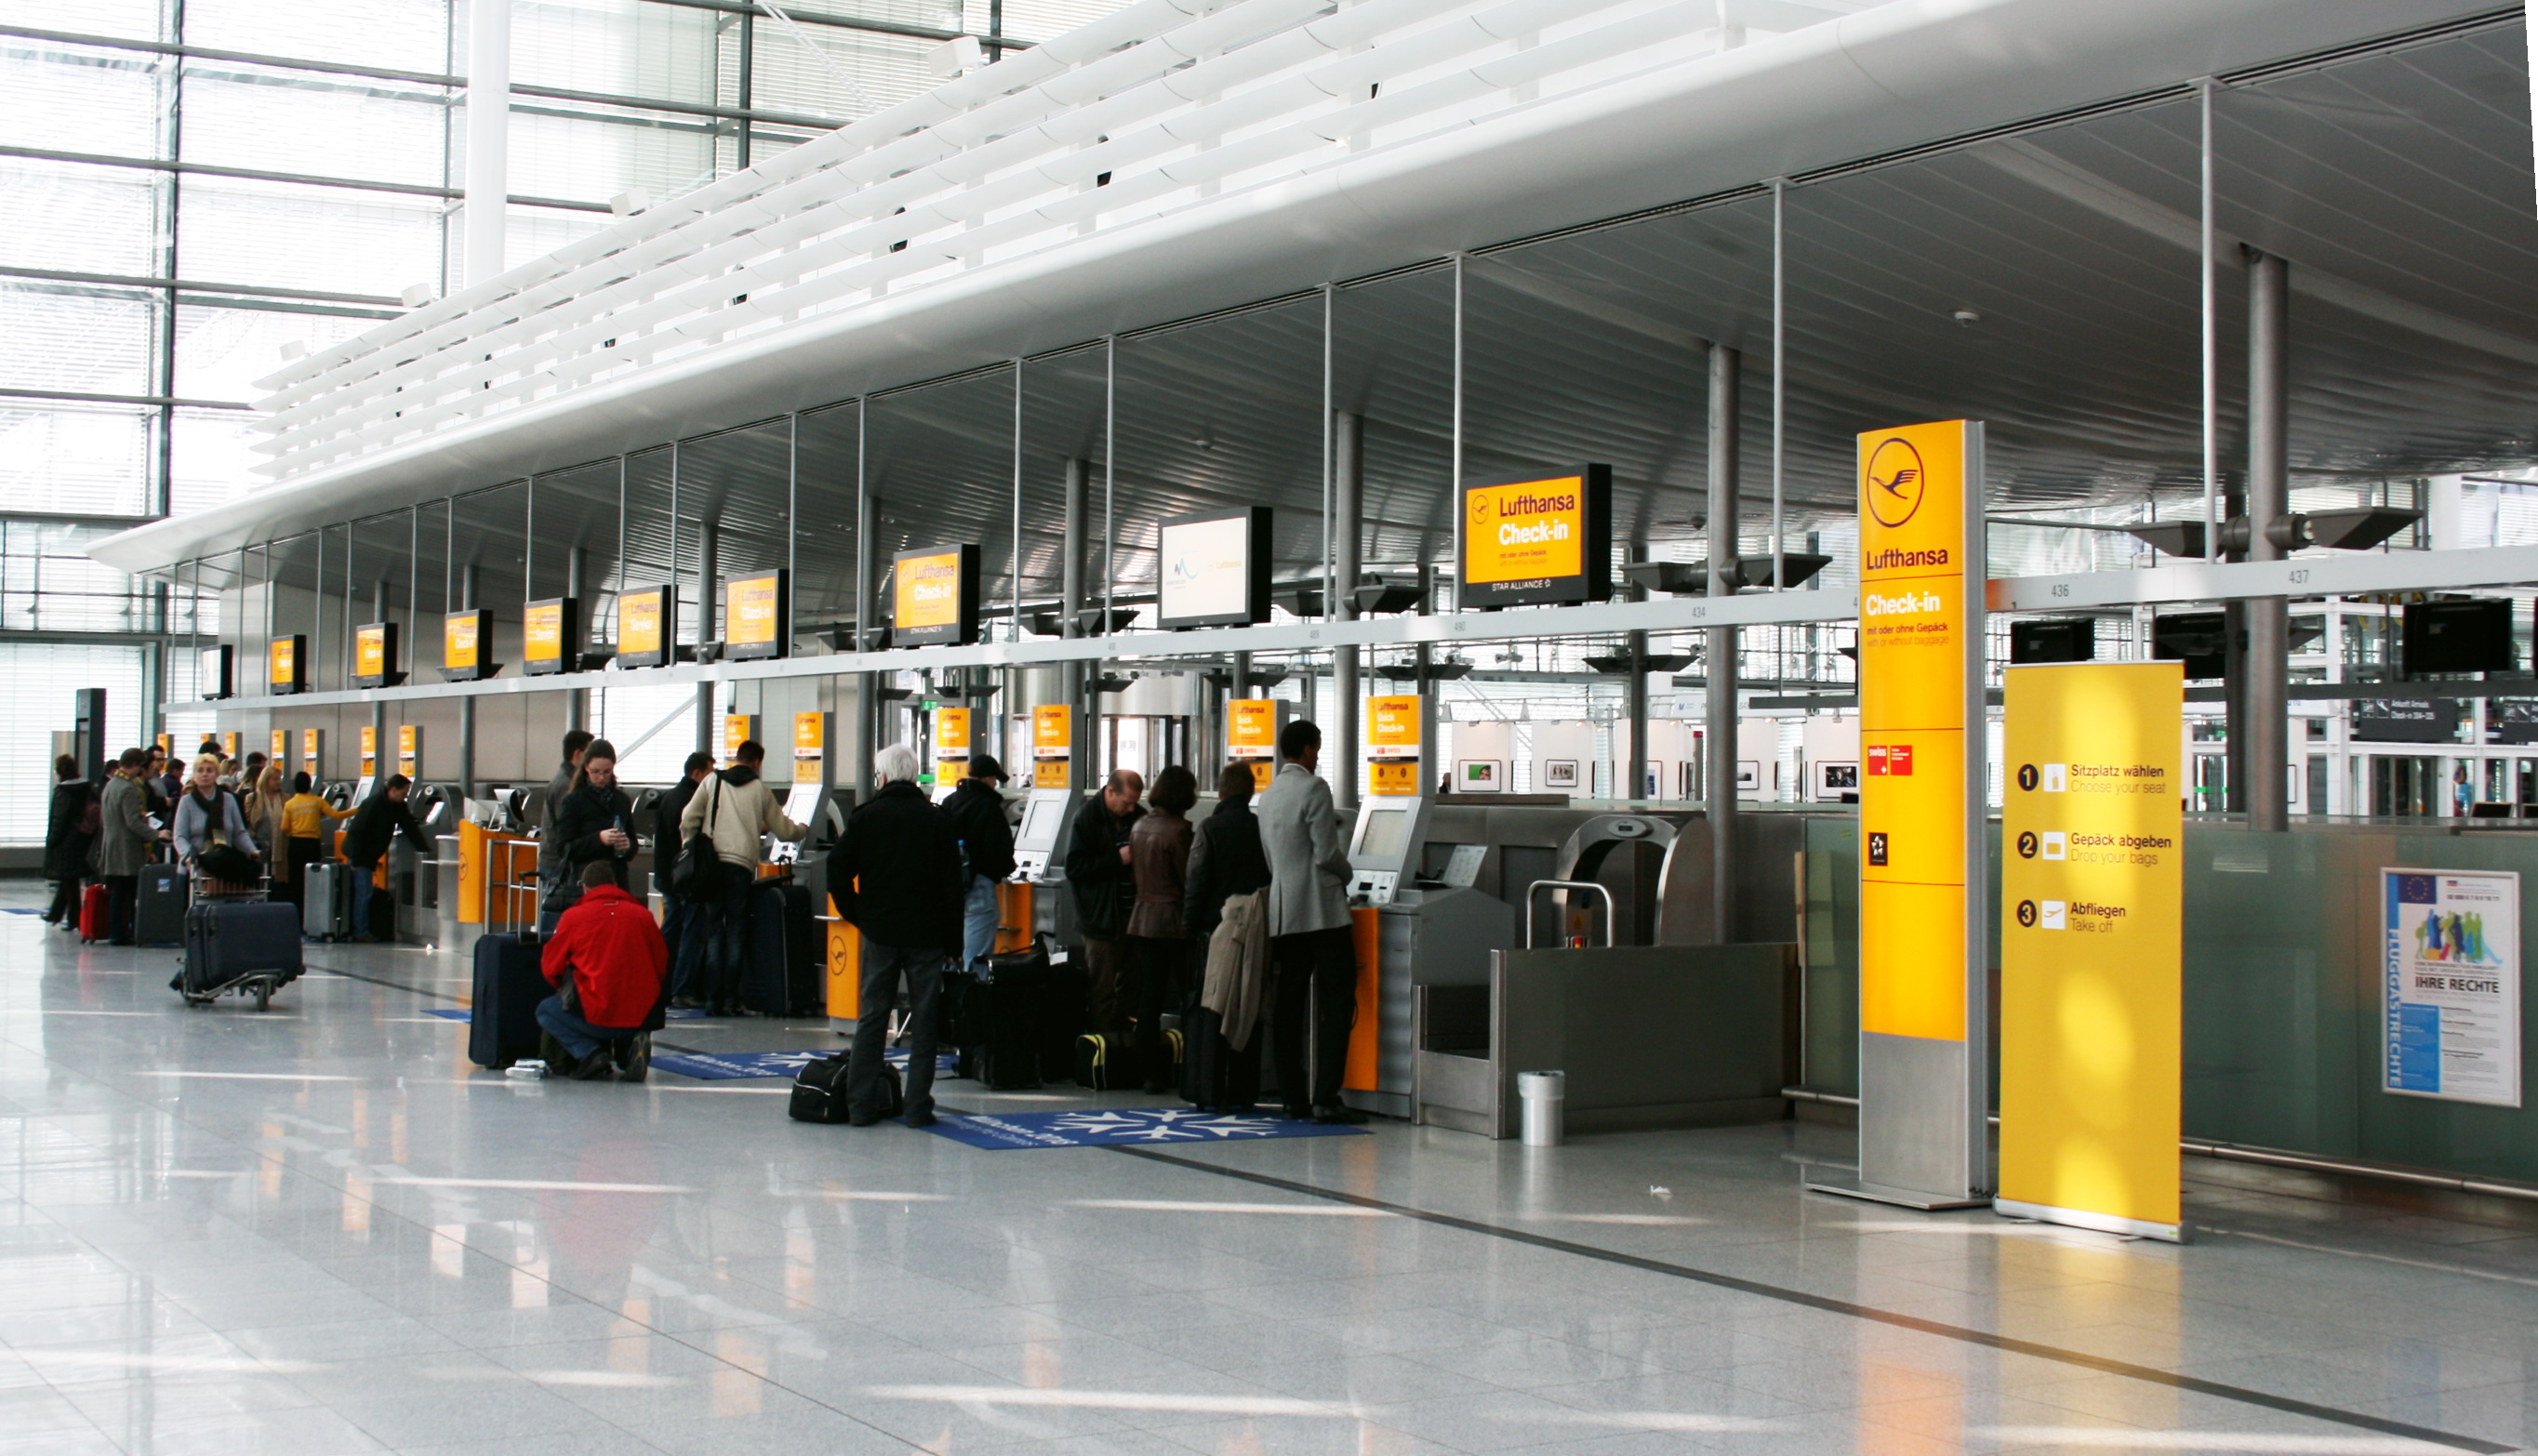 Luggage transit at munich airport terminal on different